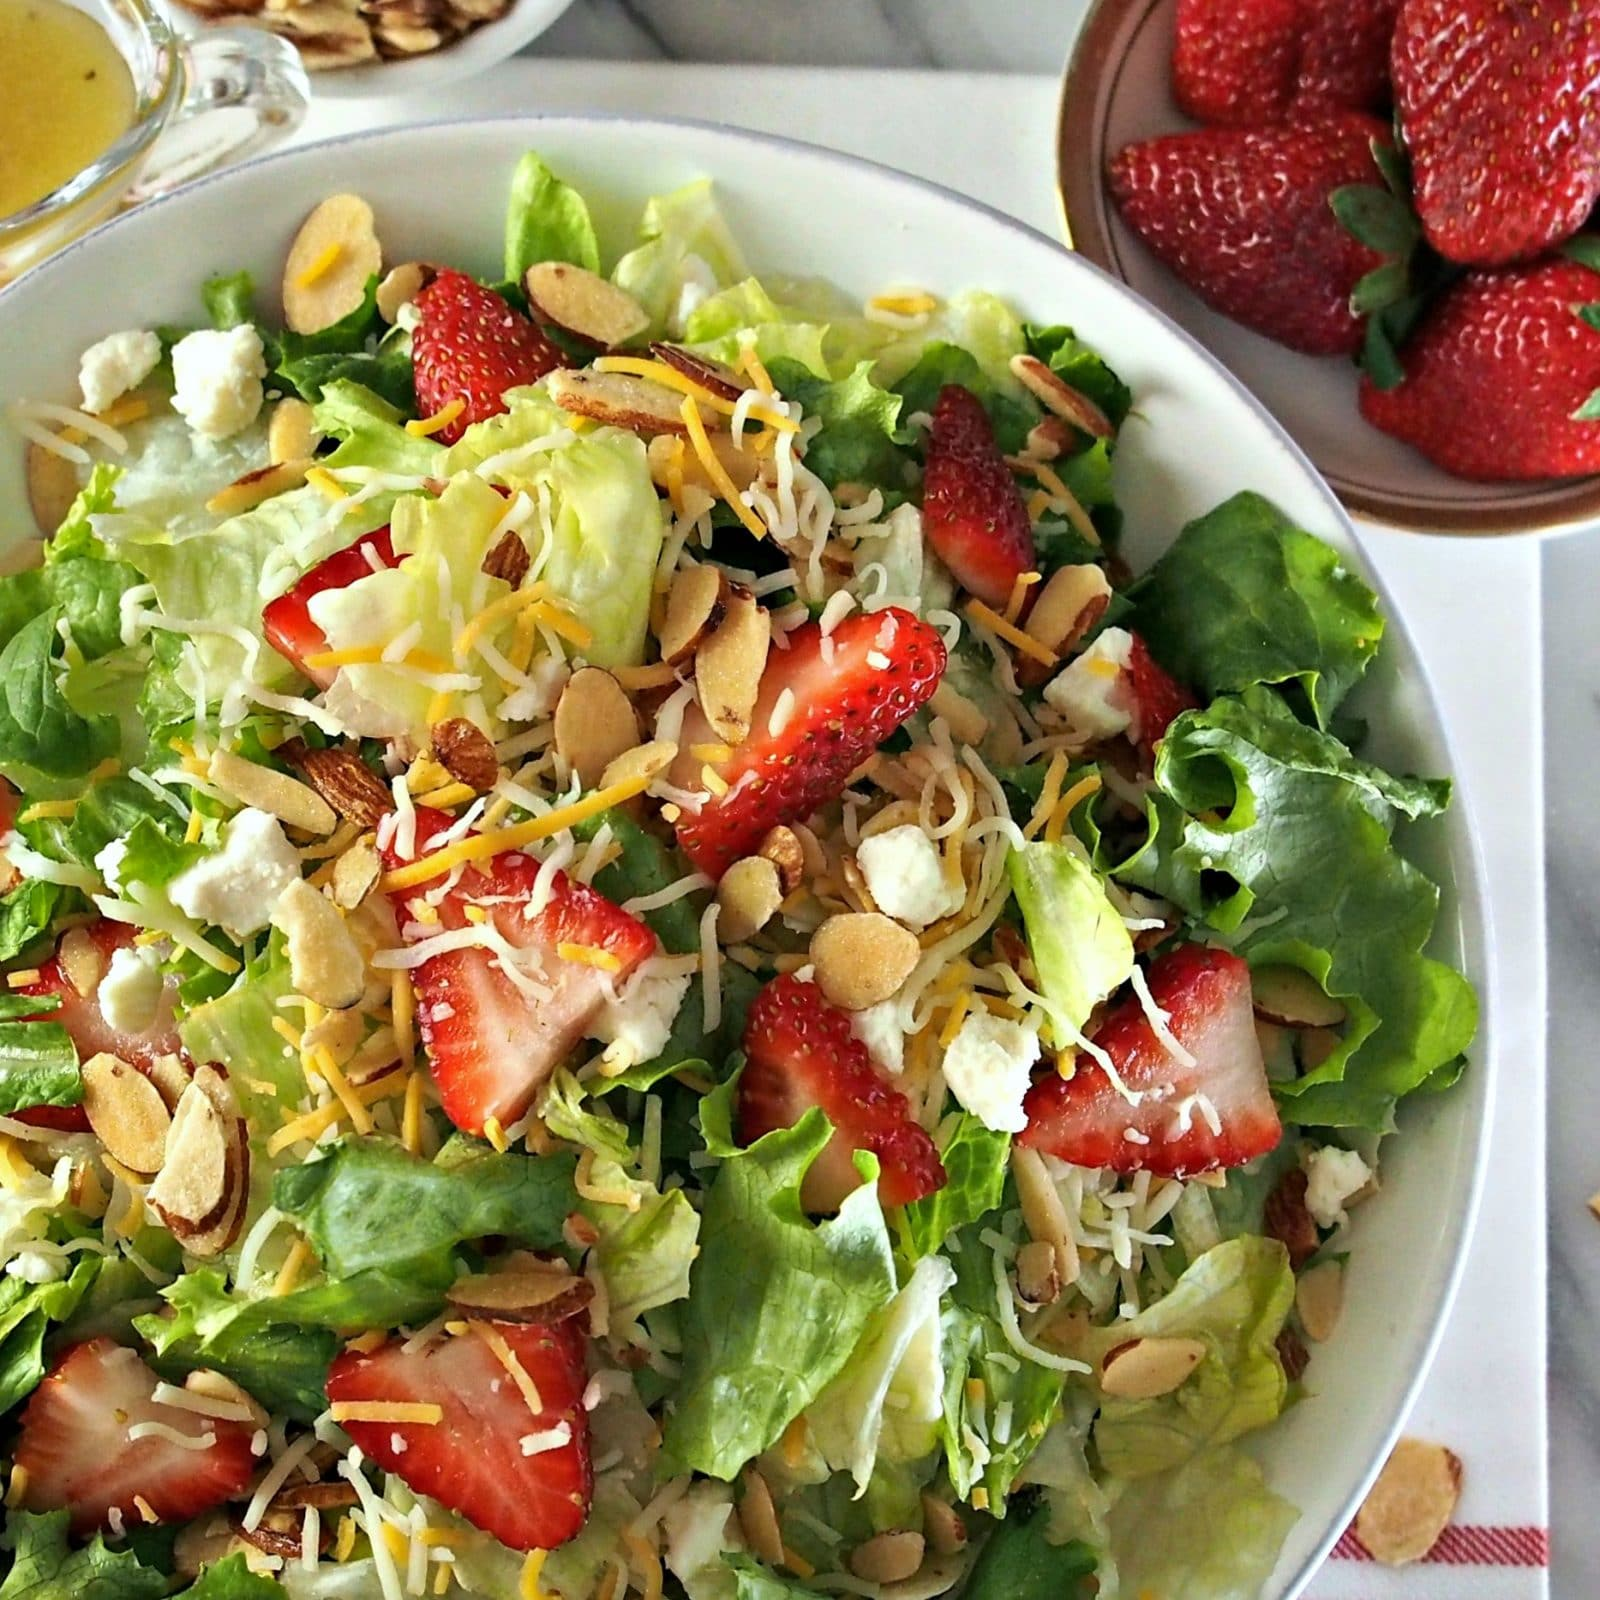 Strawberries & Greens Salad has stood the test of time. Strawberries, greens, sugared almonds, cheese with poppy seed sweet & sour dressing & croutons. Simply Sated